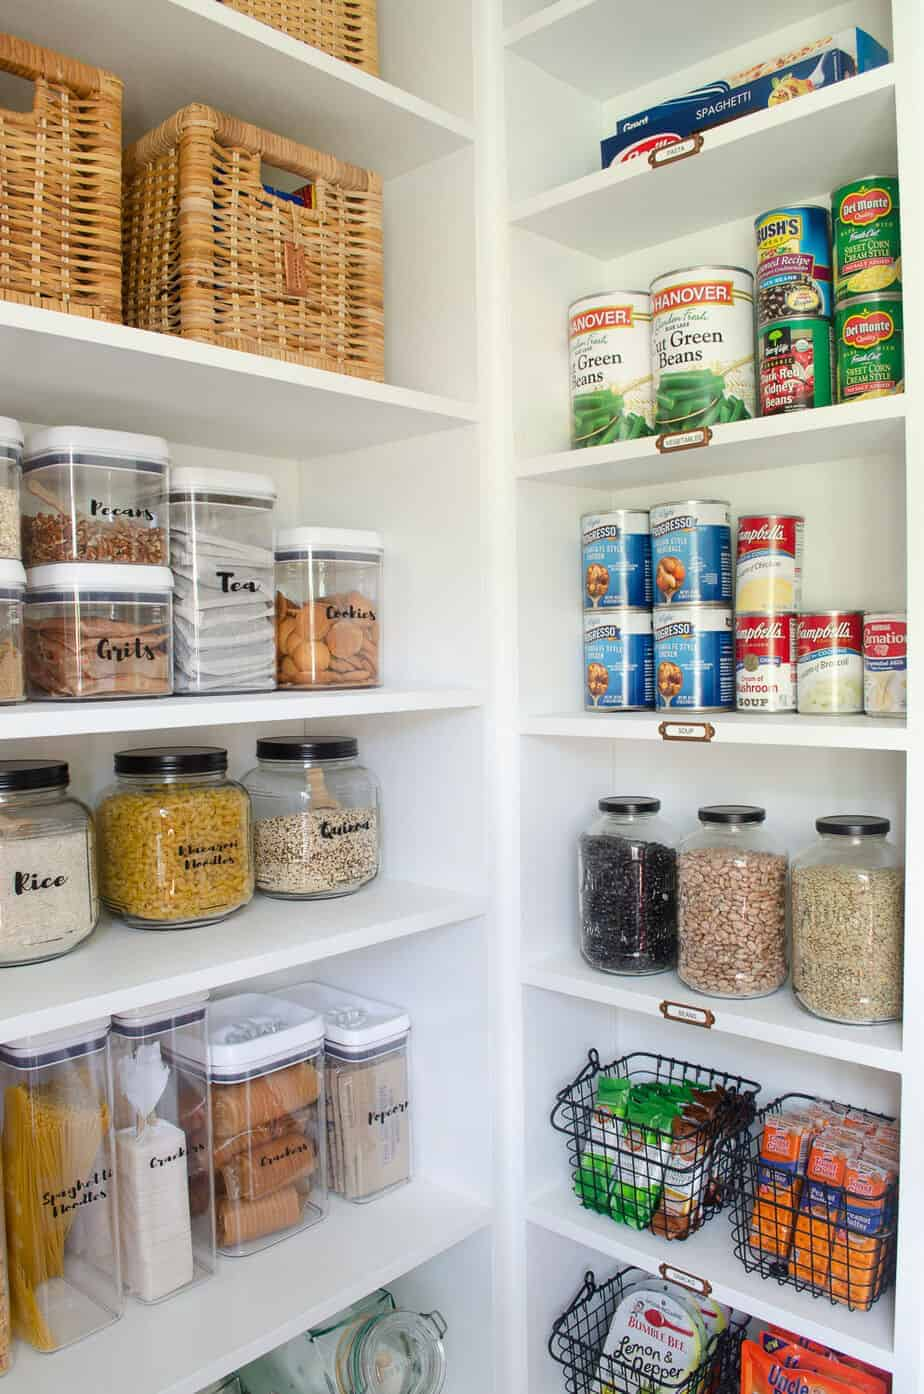 organization ideas for kitchen pantry shelves